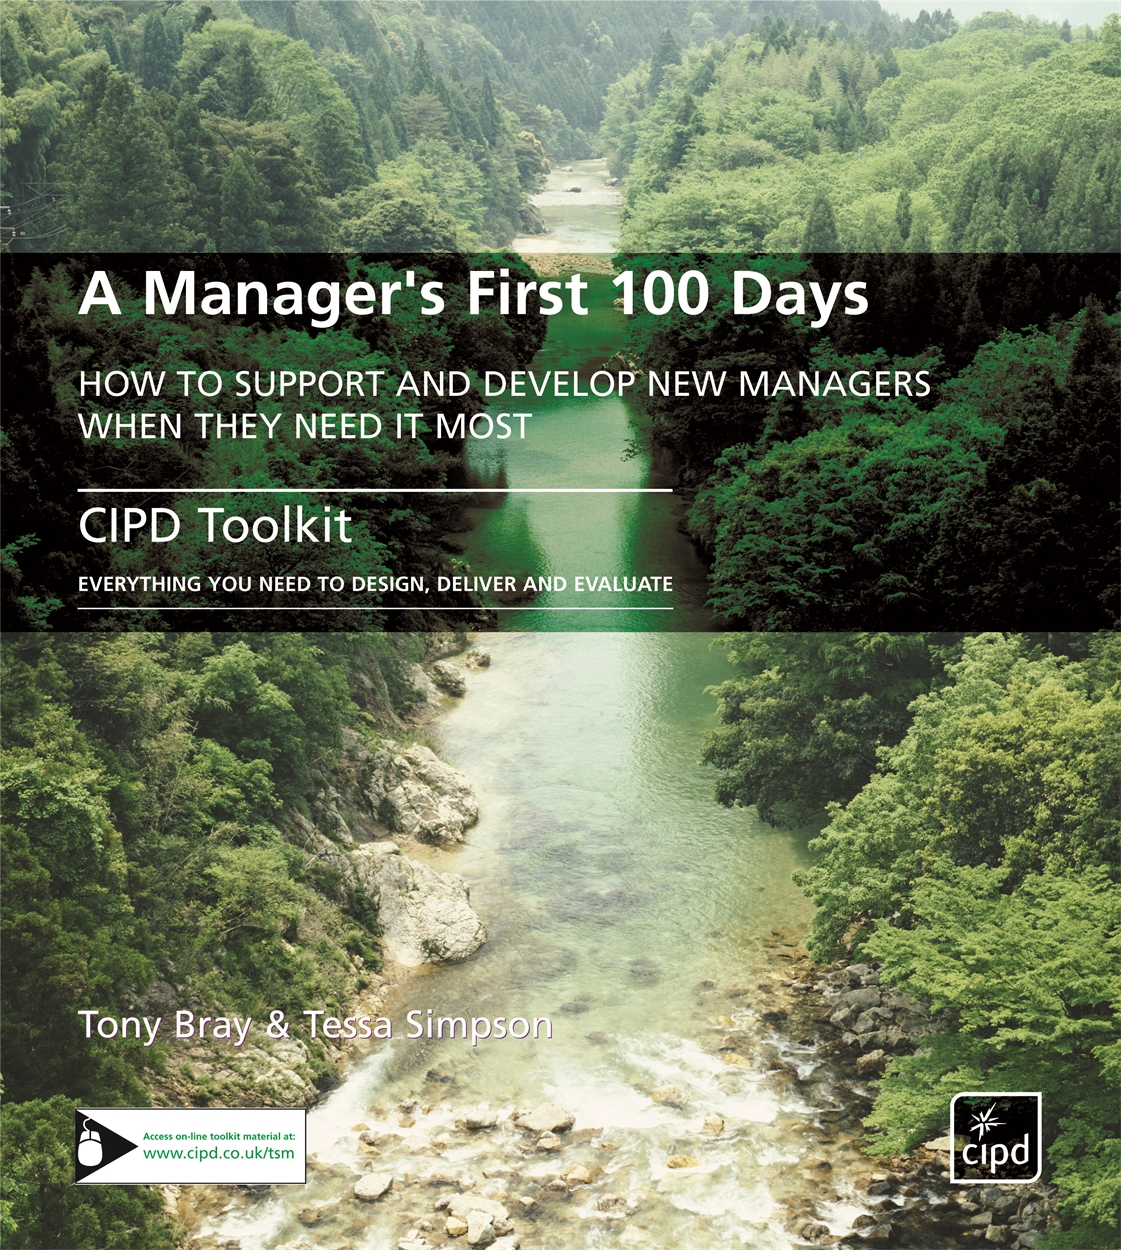 A Manager's First 100 Days (9781843981558)